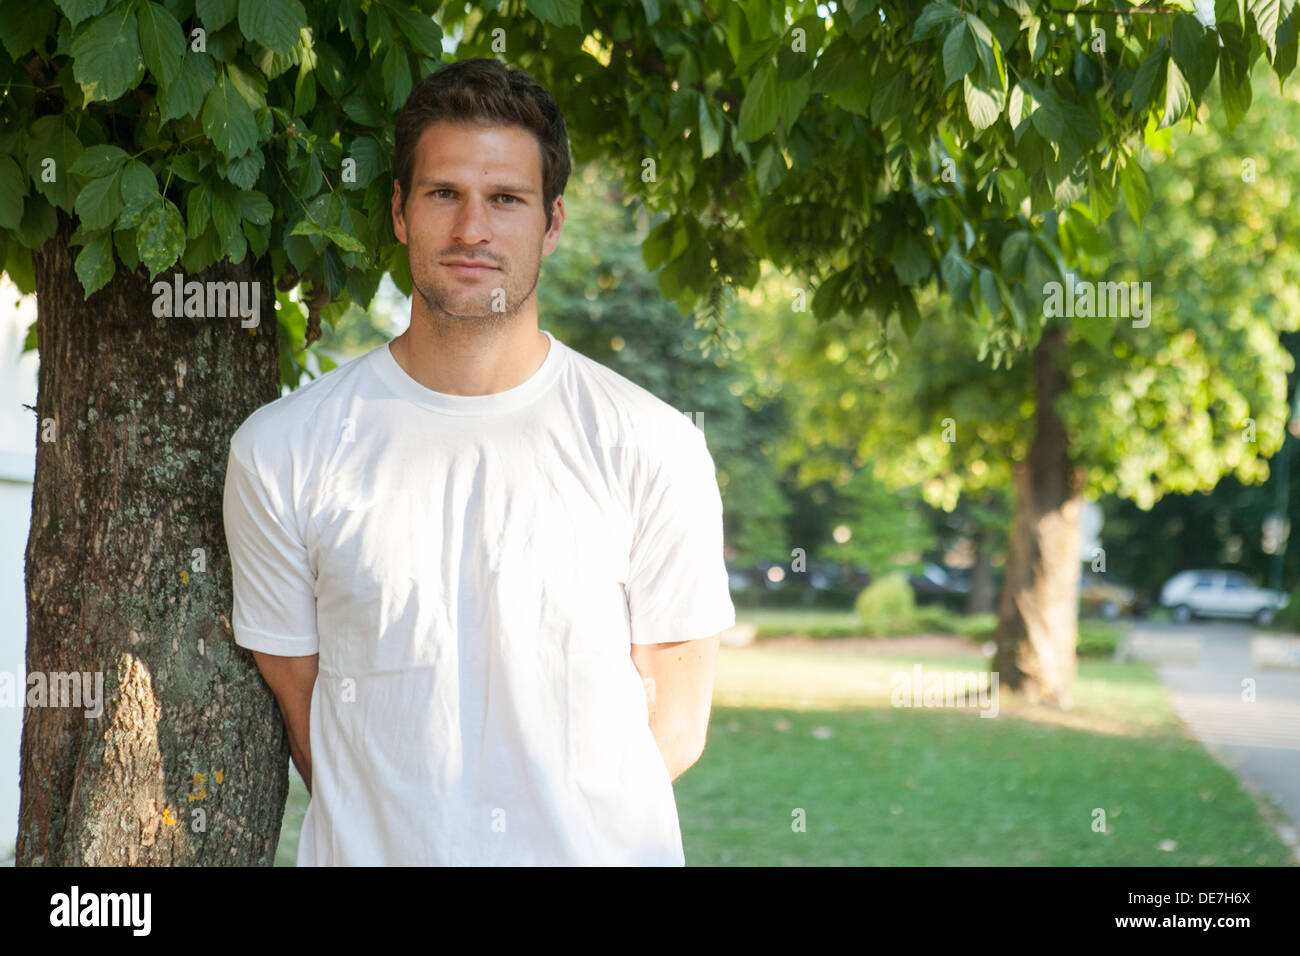 Bosnian footballer Asmir Begovic who plays as a goalkeeper for